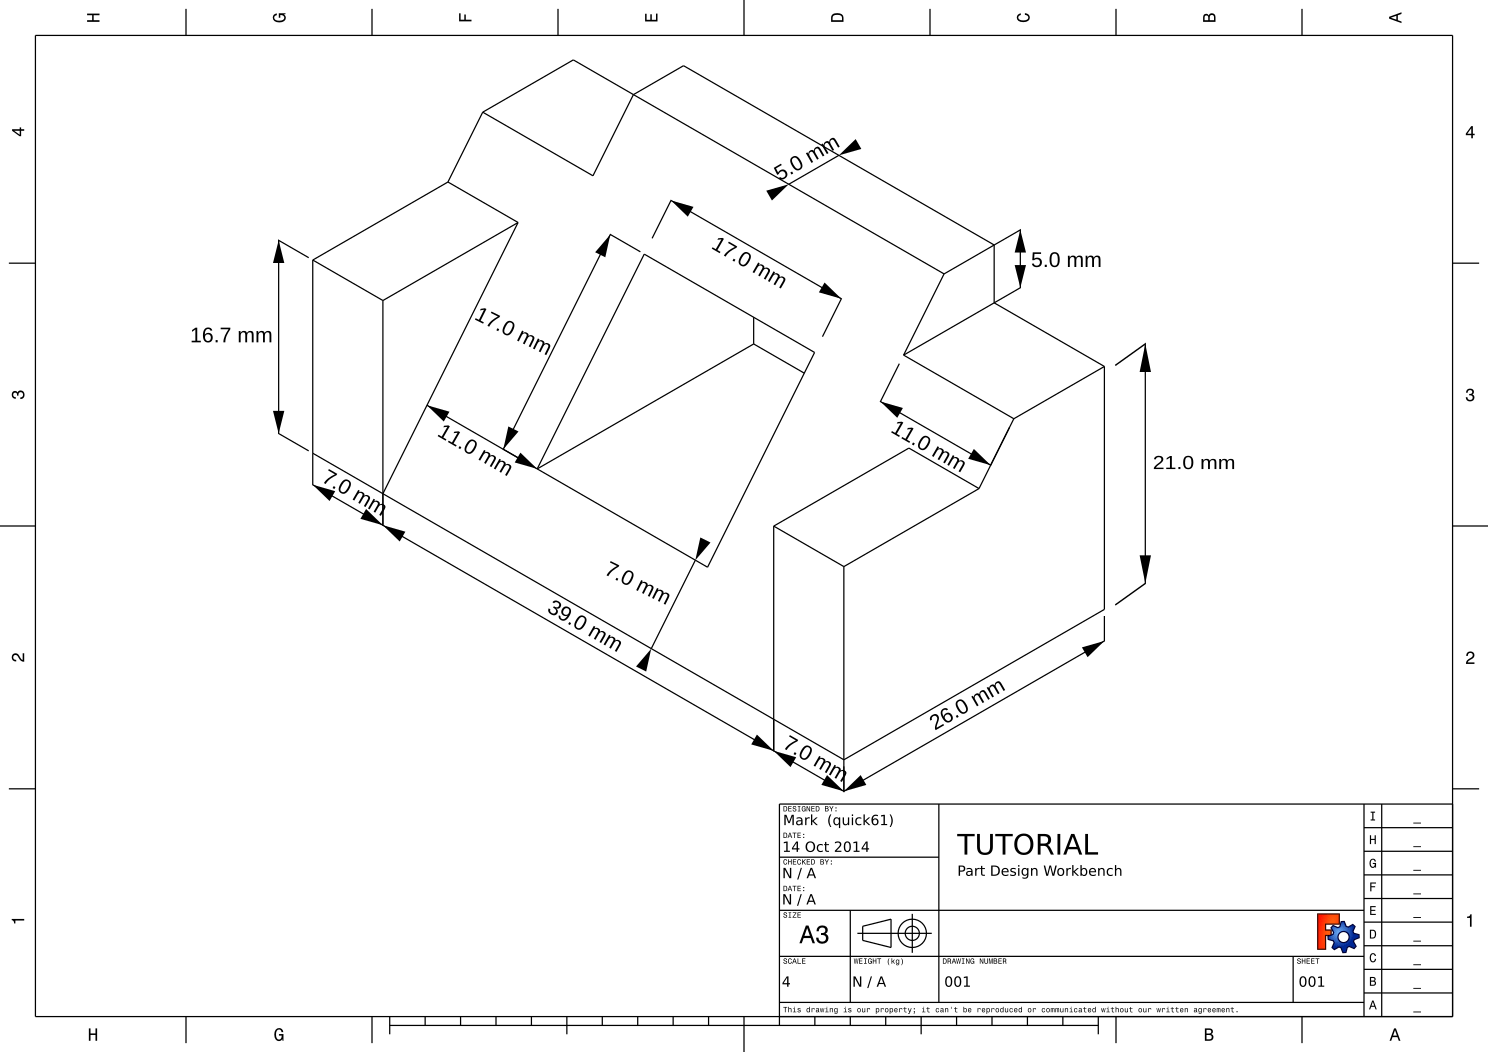 Engineering clipart cad, Engineering cad Transparent FREE